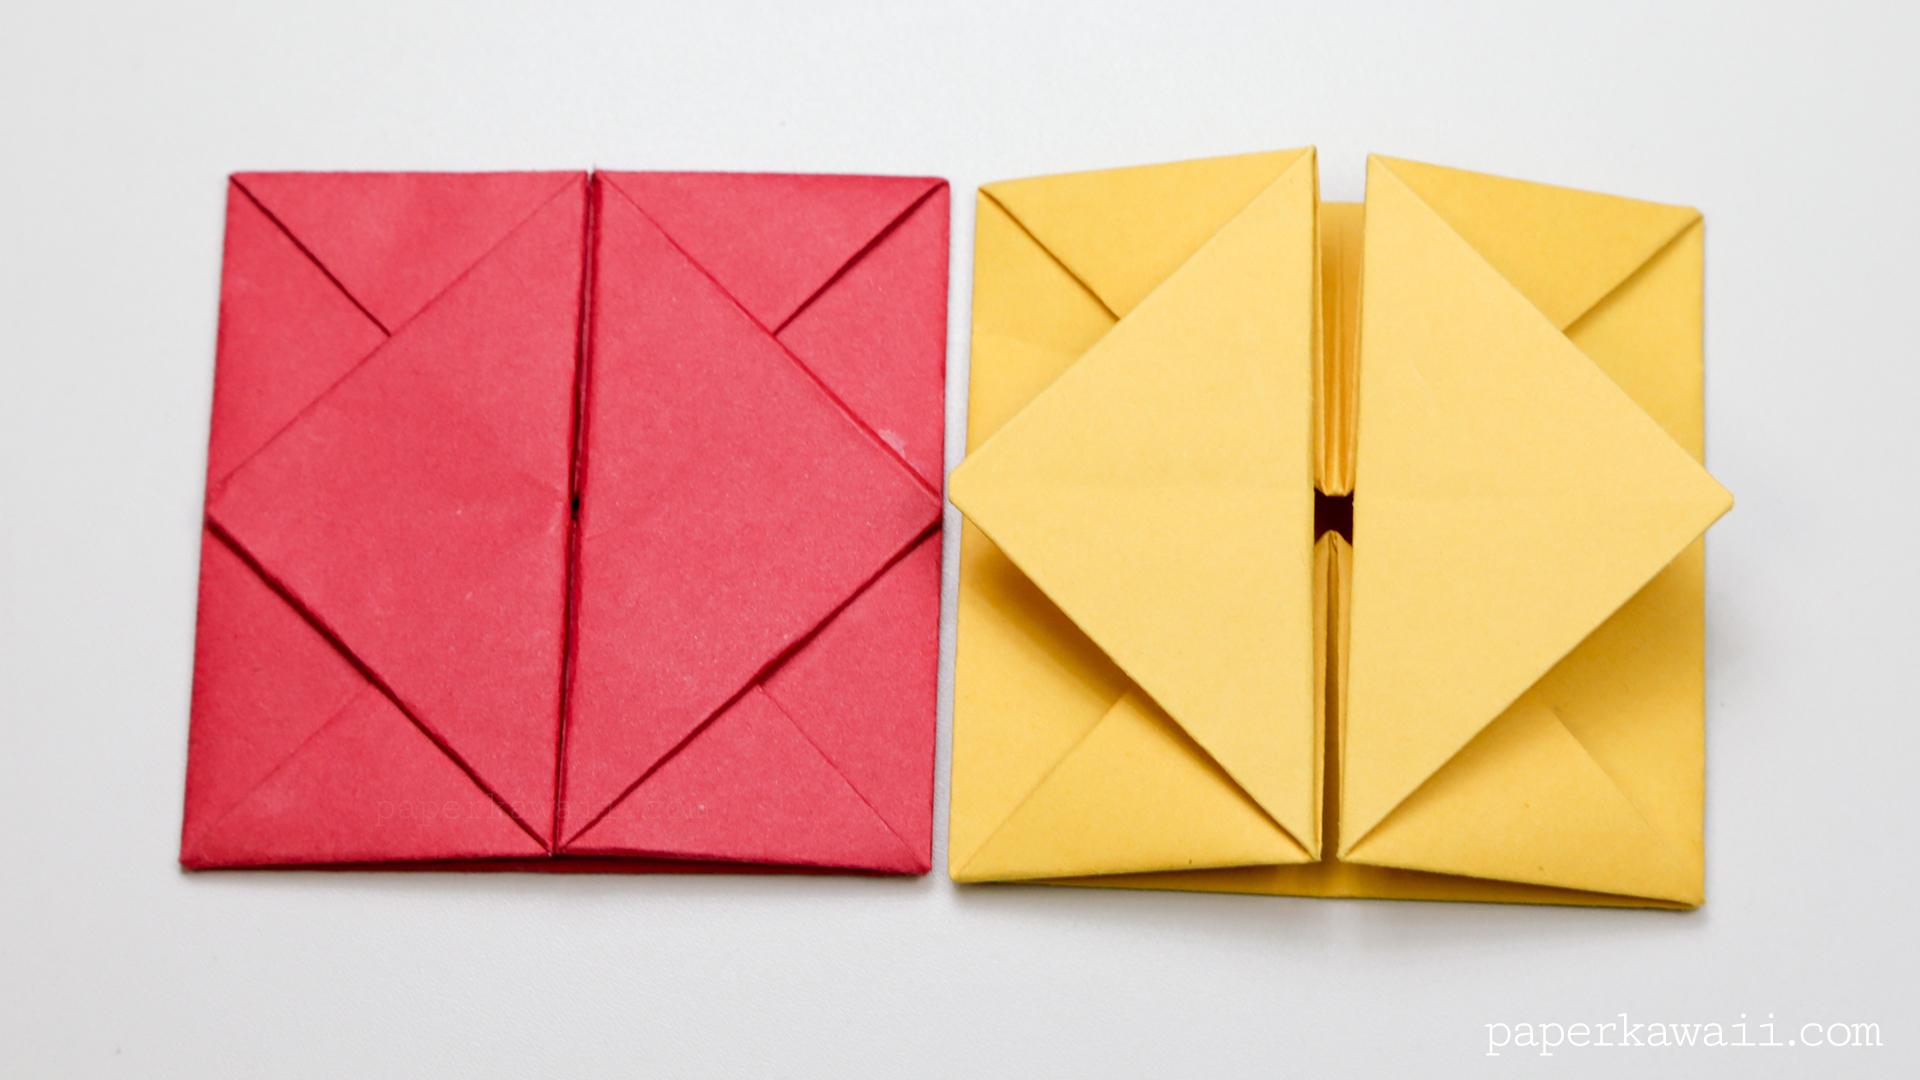 Origami bamboo letterfold folding instructions - Origami Envelope Box Instructions